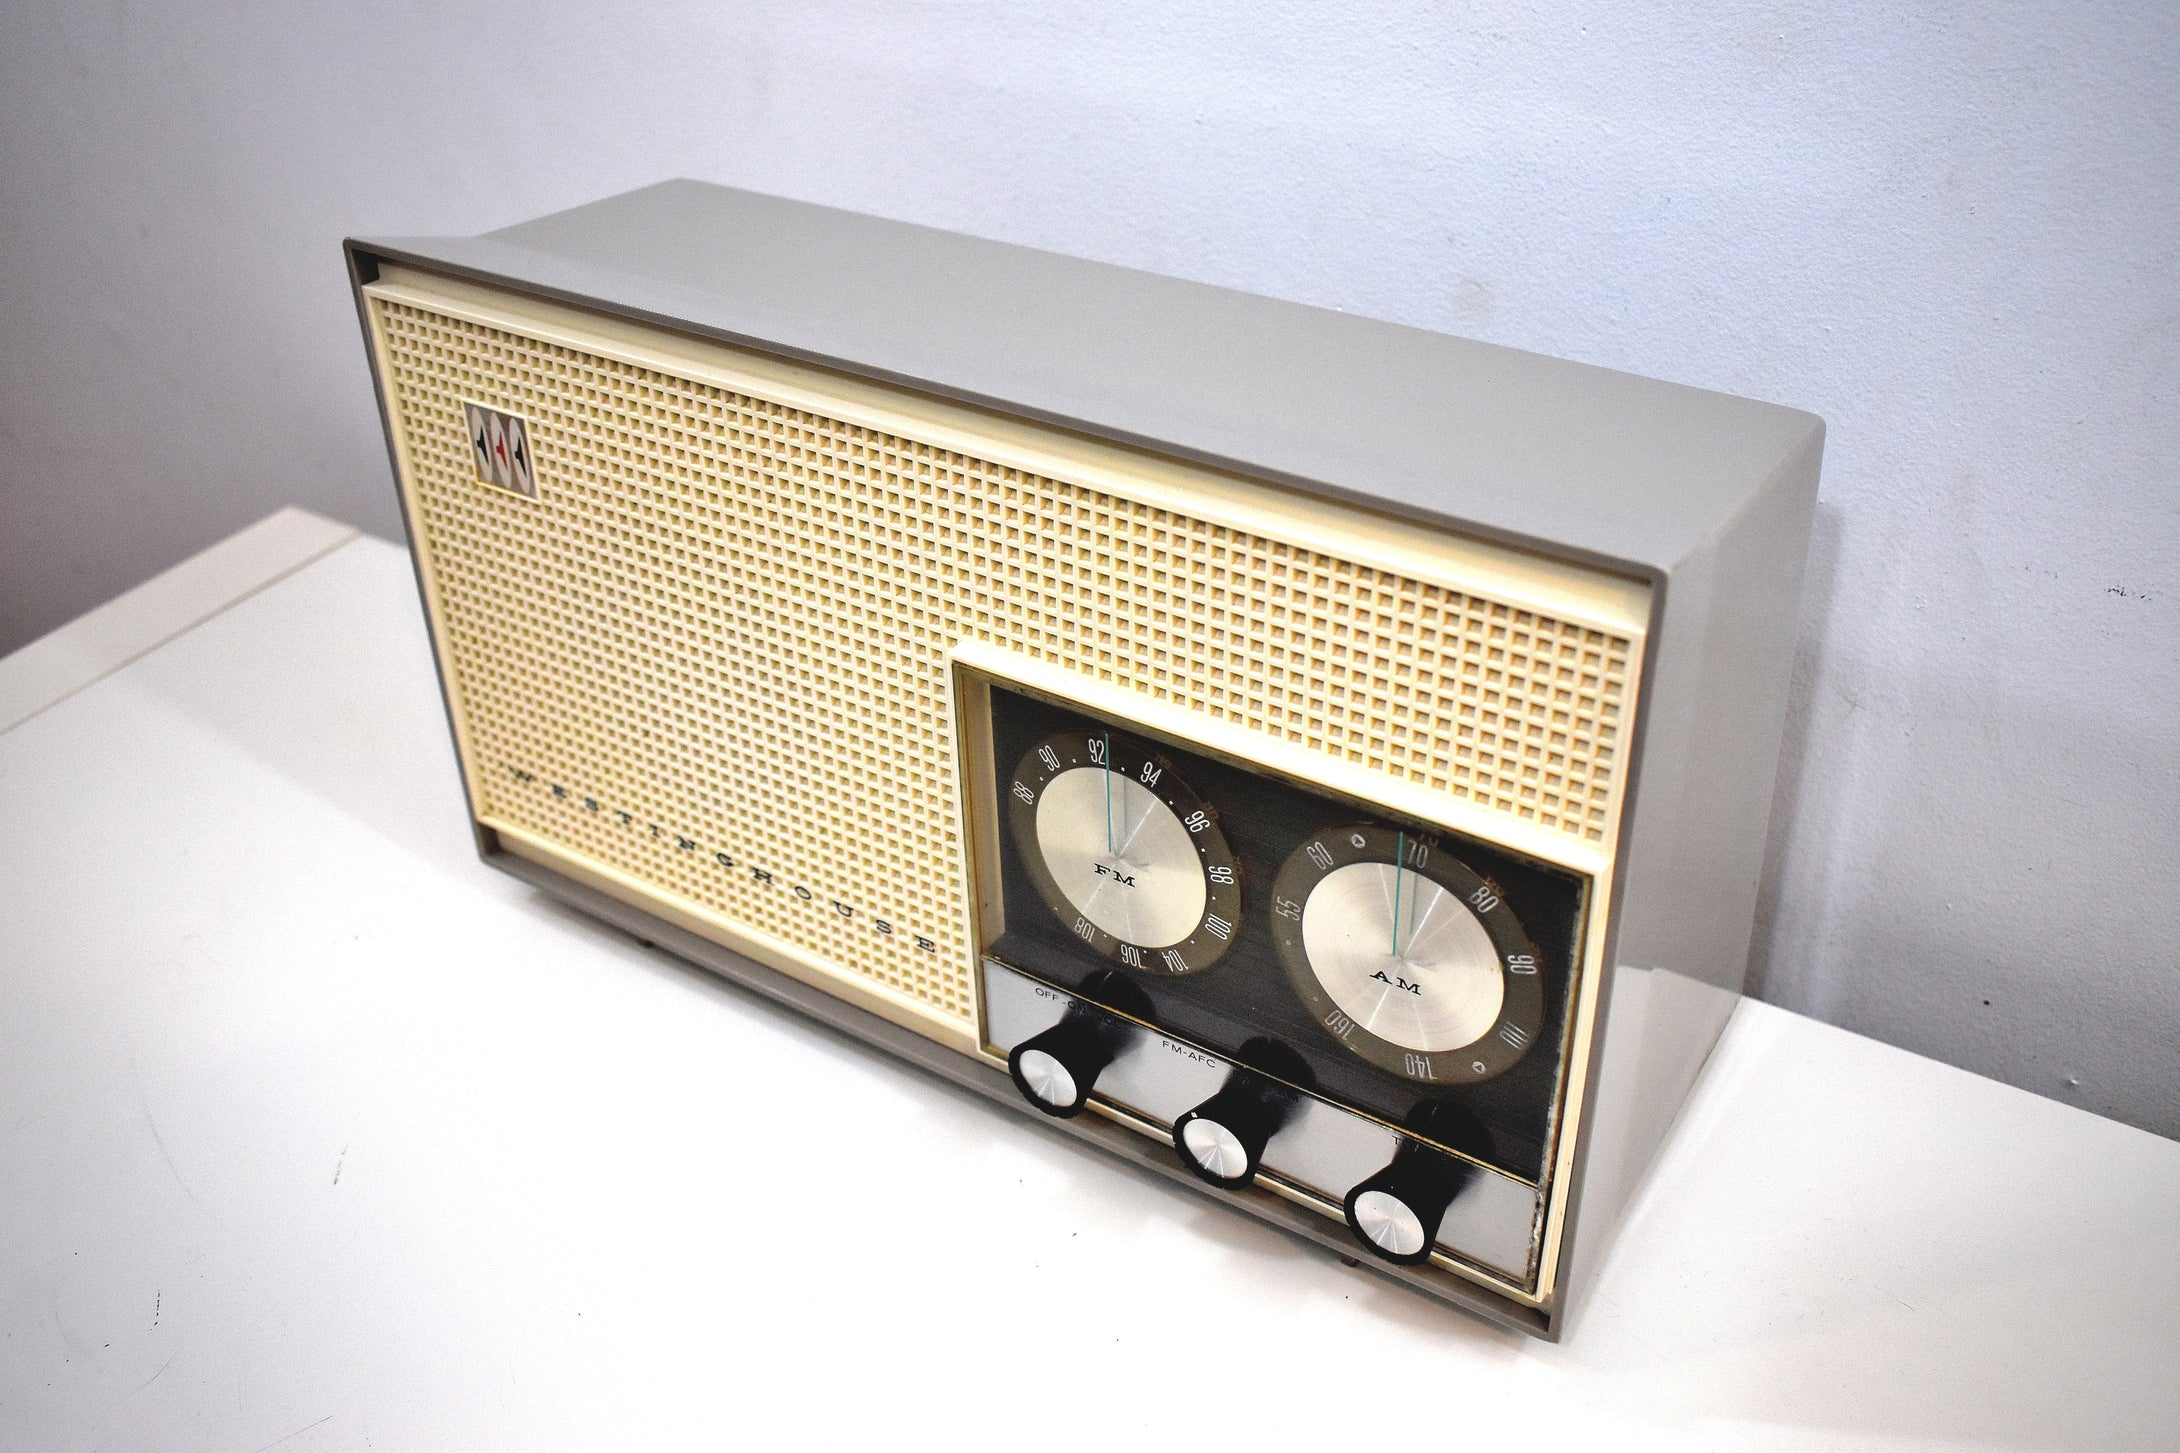 Dove Gray and White 1961 Westinghouse Model H-761N7B AM/FM Vacuum Tube Radio Beauty and Tone Blaster!